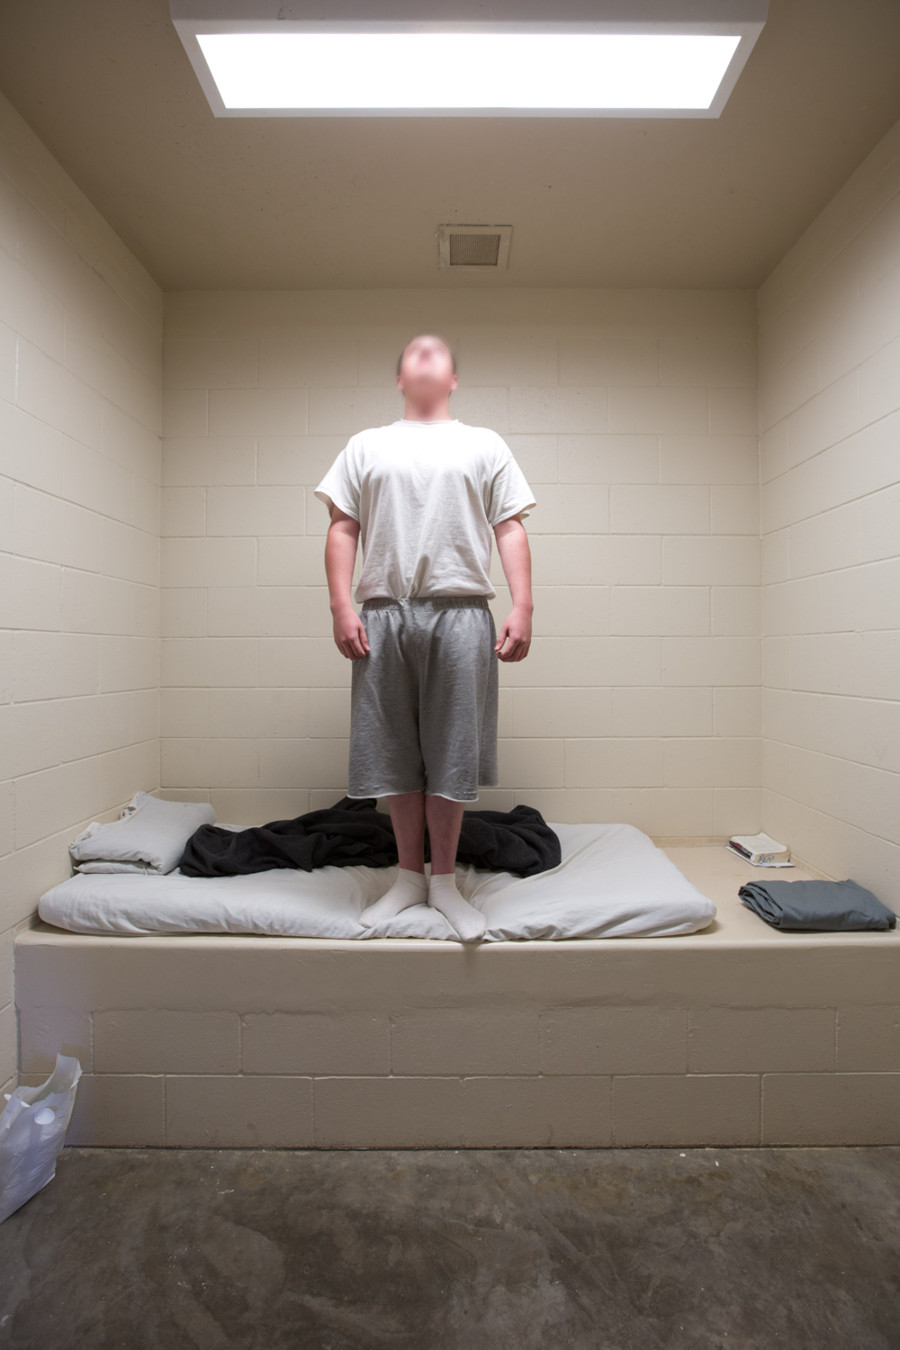 Cabarrus Inmate County Search